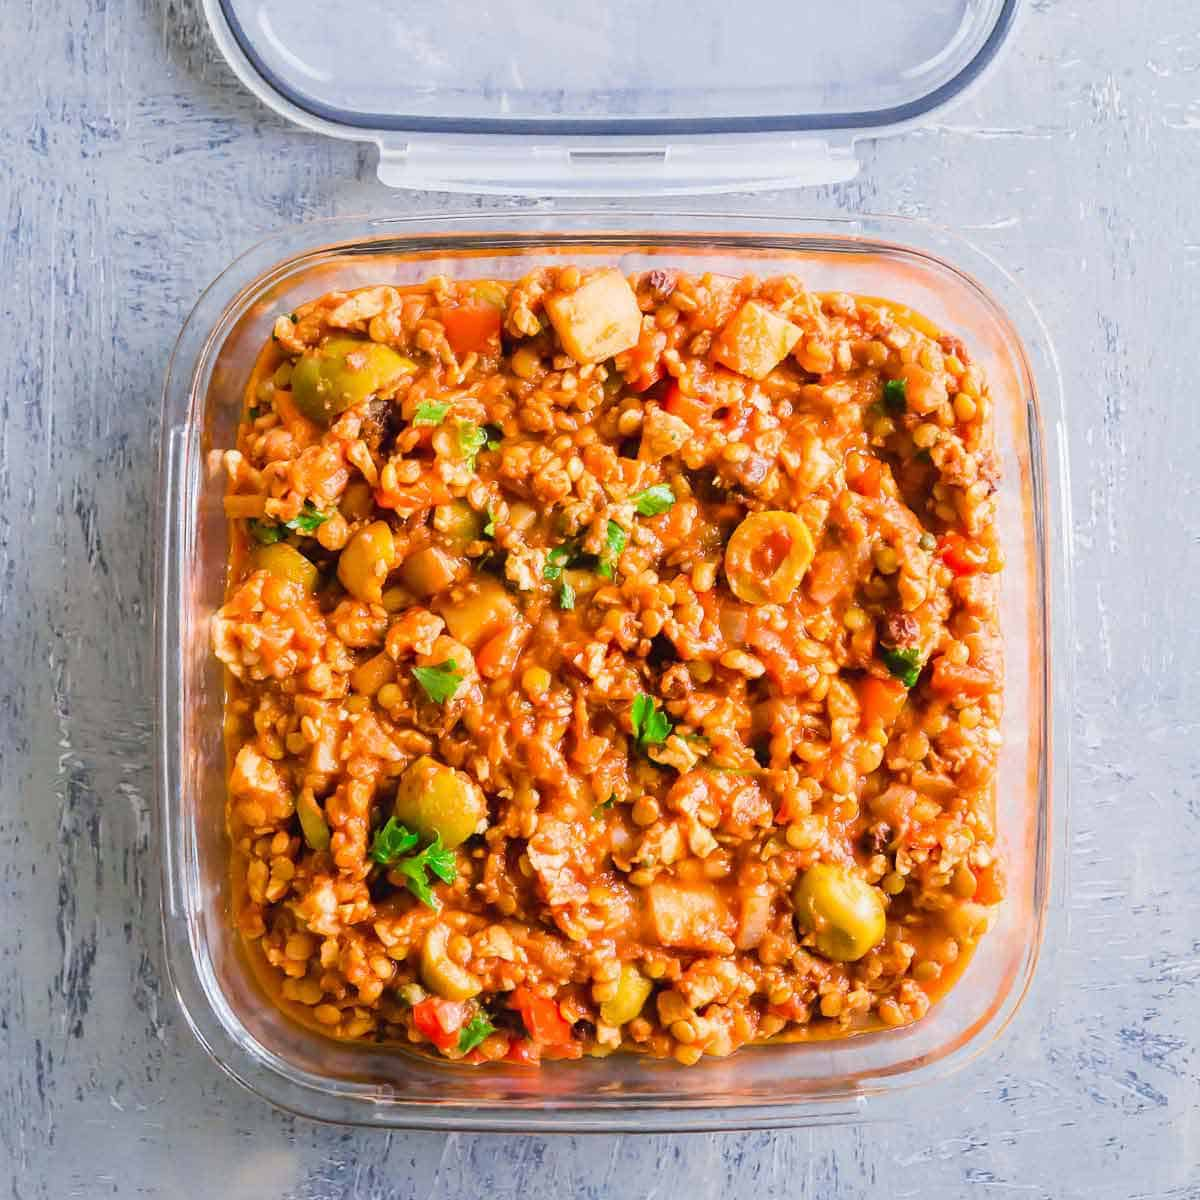 This vegan picadillo is an excellent plant based meal prep recipe full of Cuban/Spanish flavors.